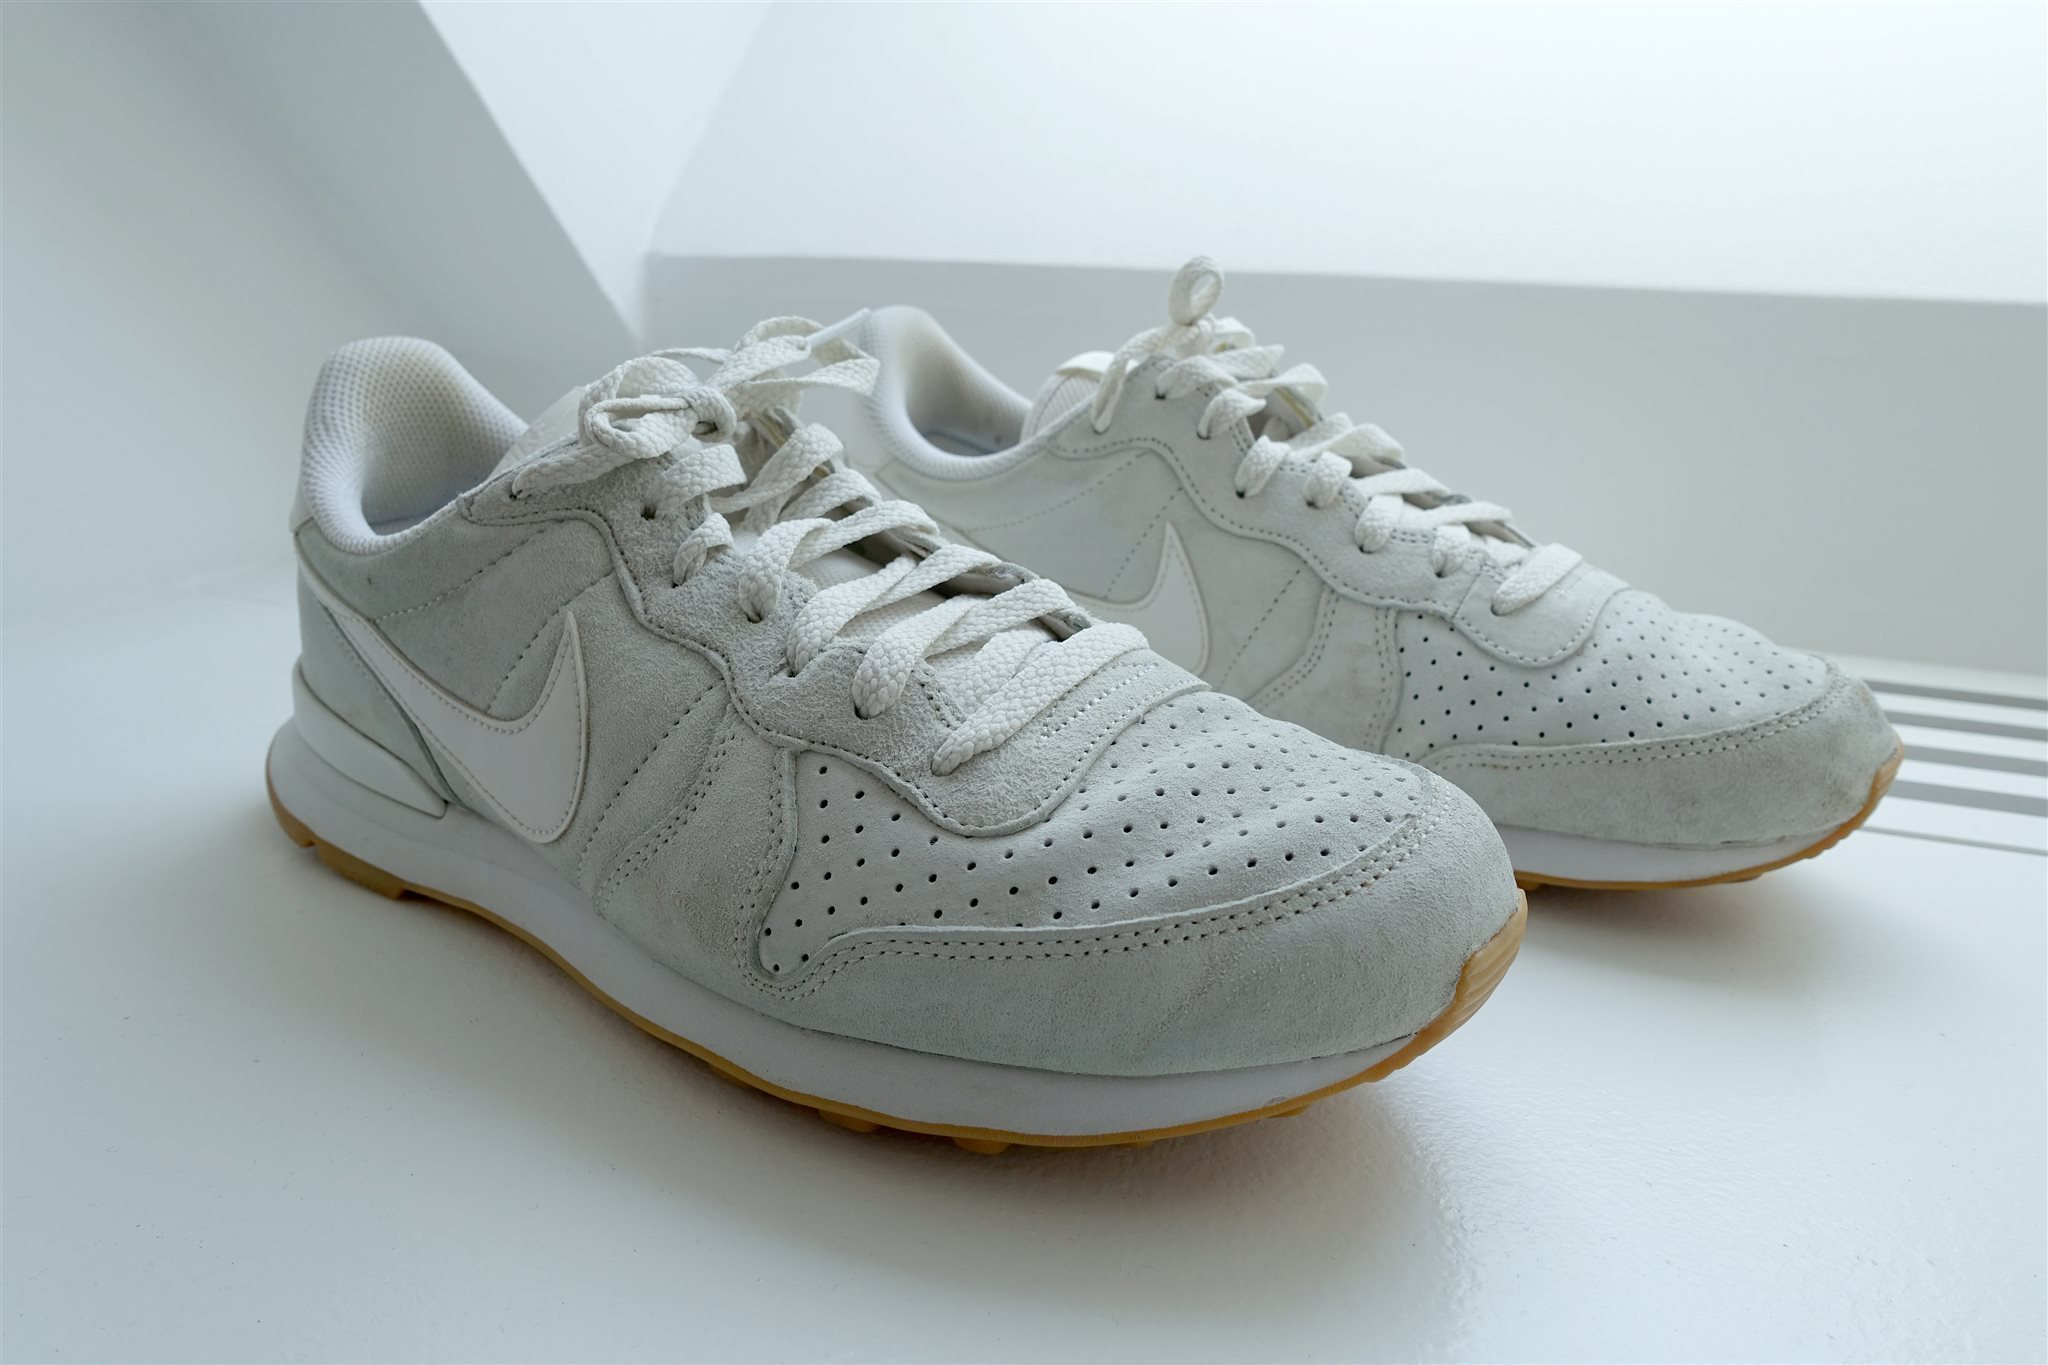 sale retailer 115b3 9179f NIKE AIR INTERNATIONALIST, sneakers, skor, sneaker, beige, vårskor NYSKICK!